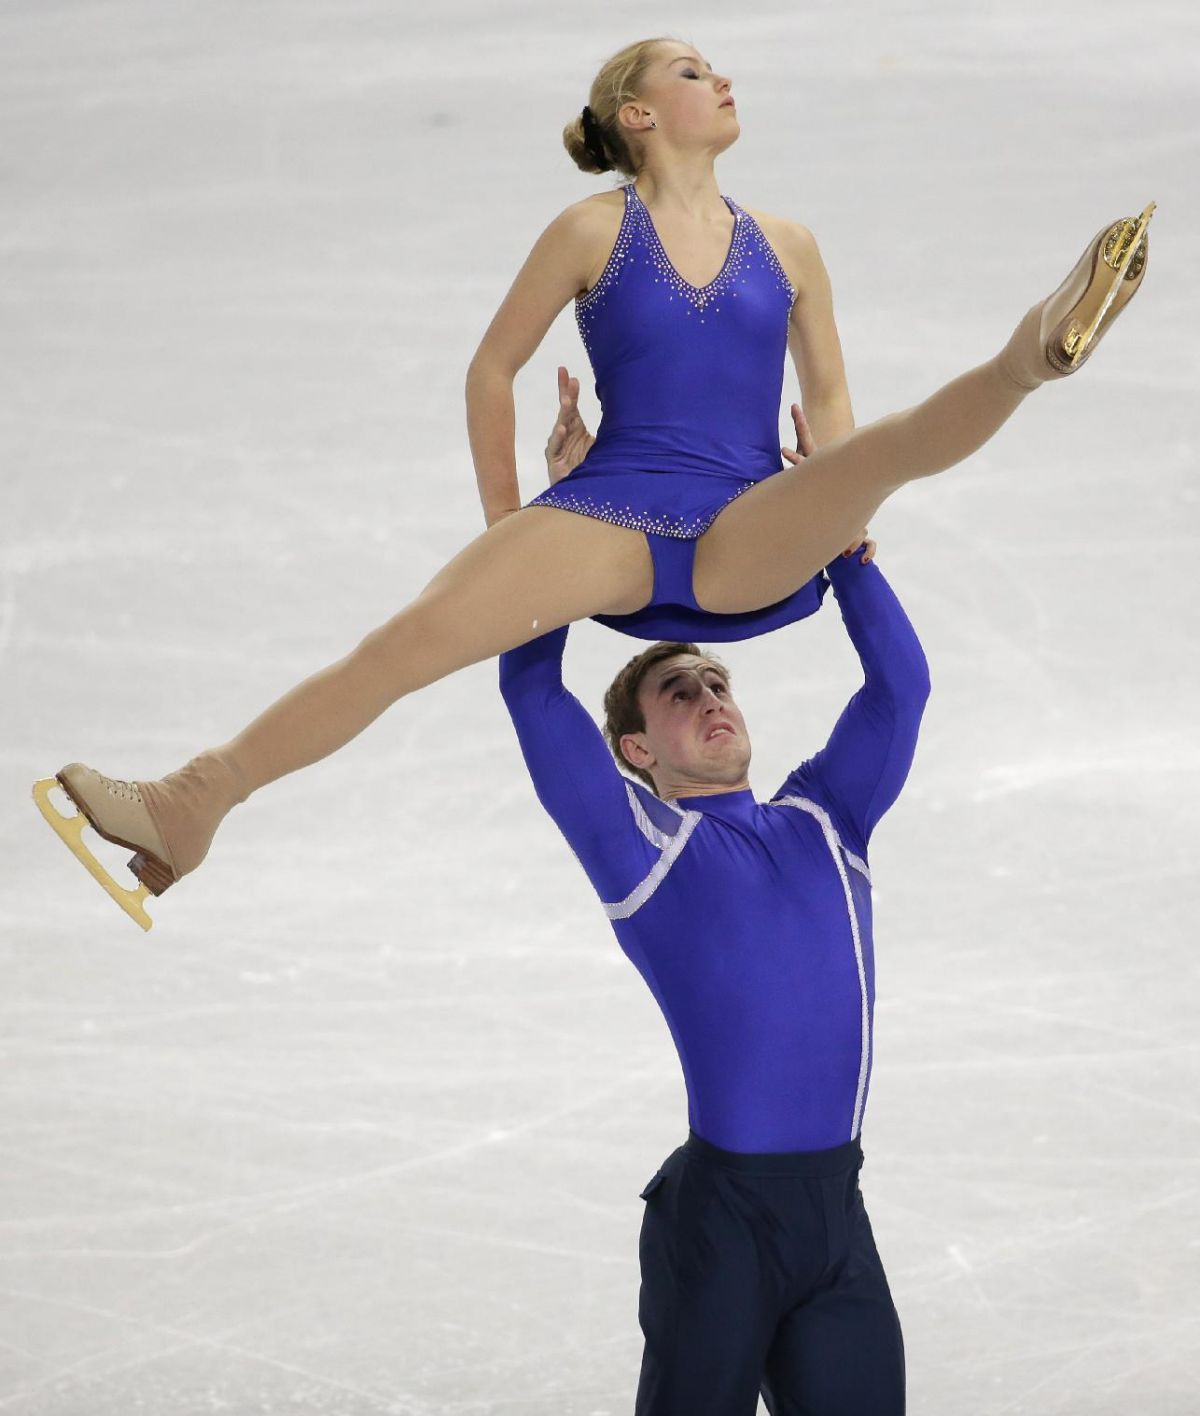 JULIA LAVRENTIEVA and Yuri Rudyk at 2014 Winter Olympics in Sochi